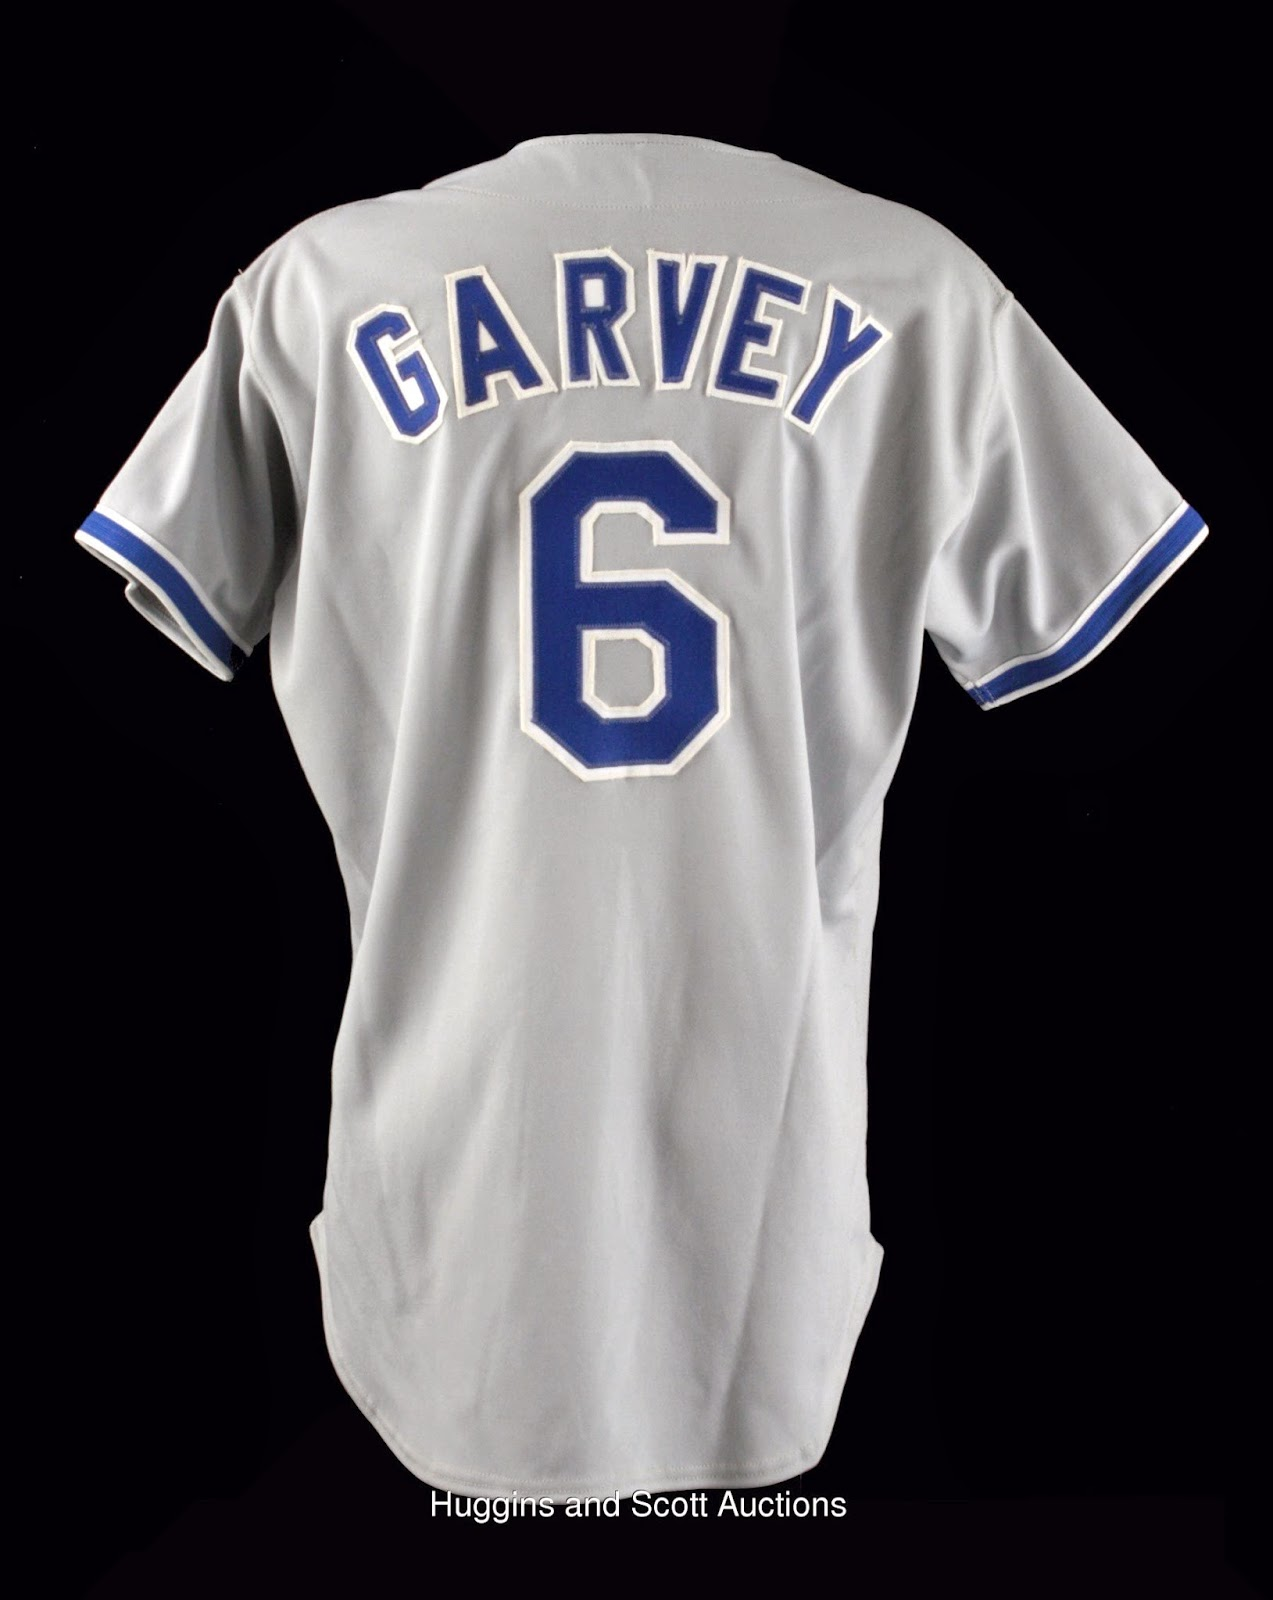 Sons of Steve Garvey  Game 155 Thread  Sept. 20 vs. Cubs b427ce44ac7